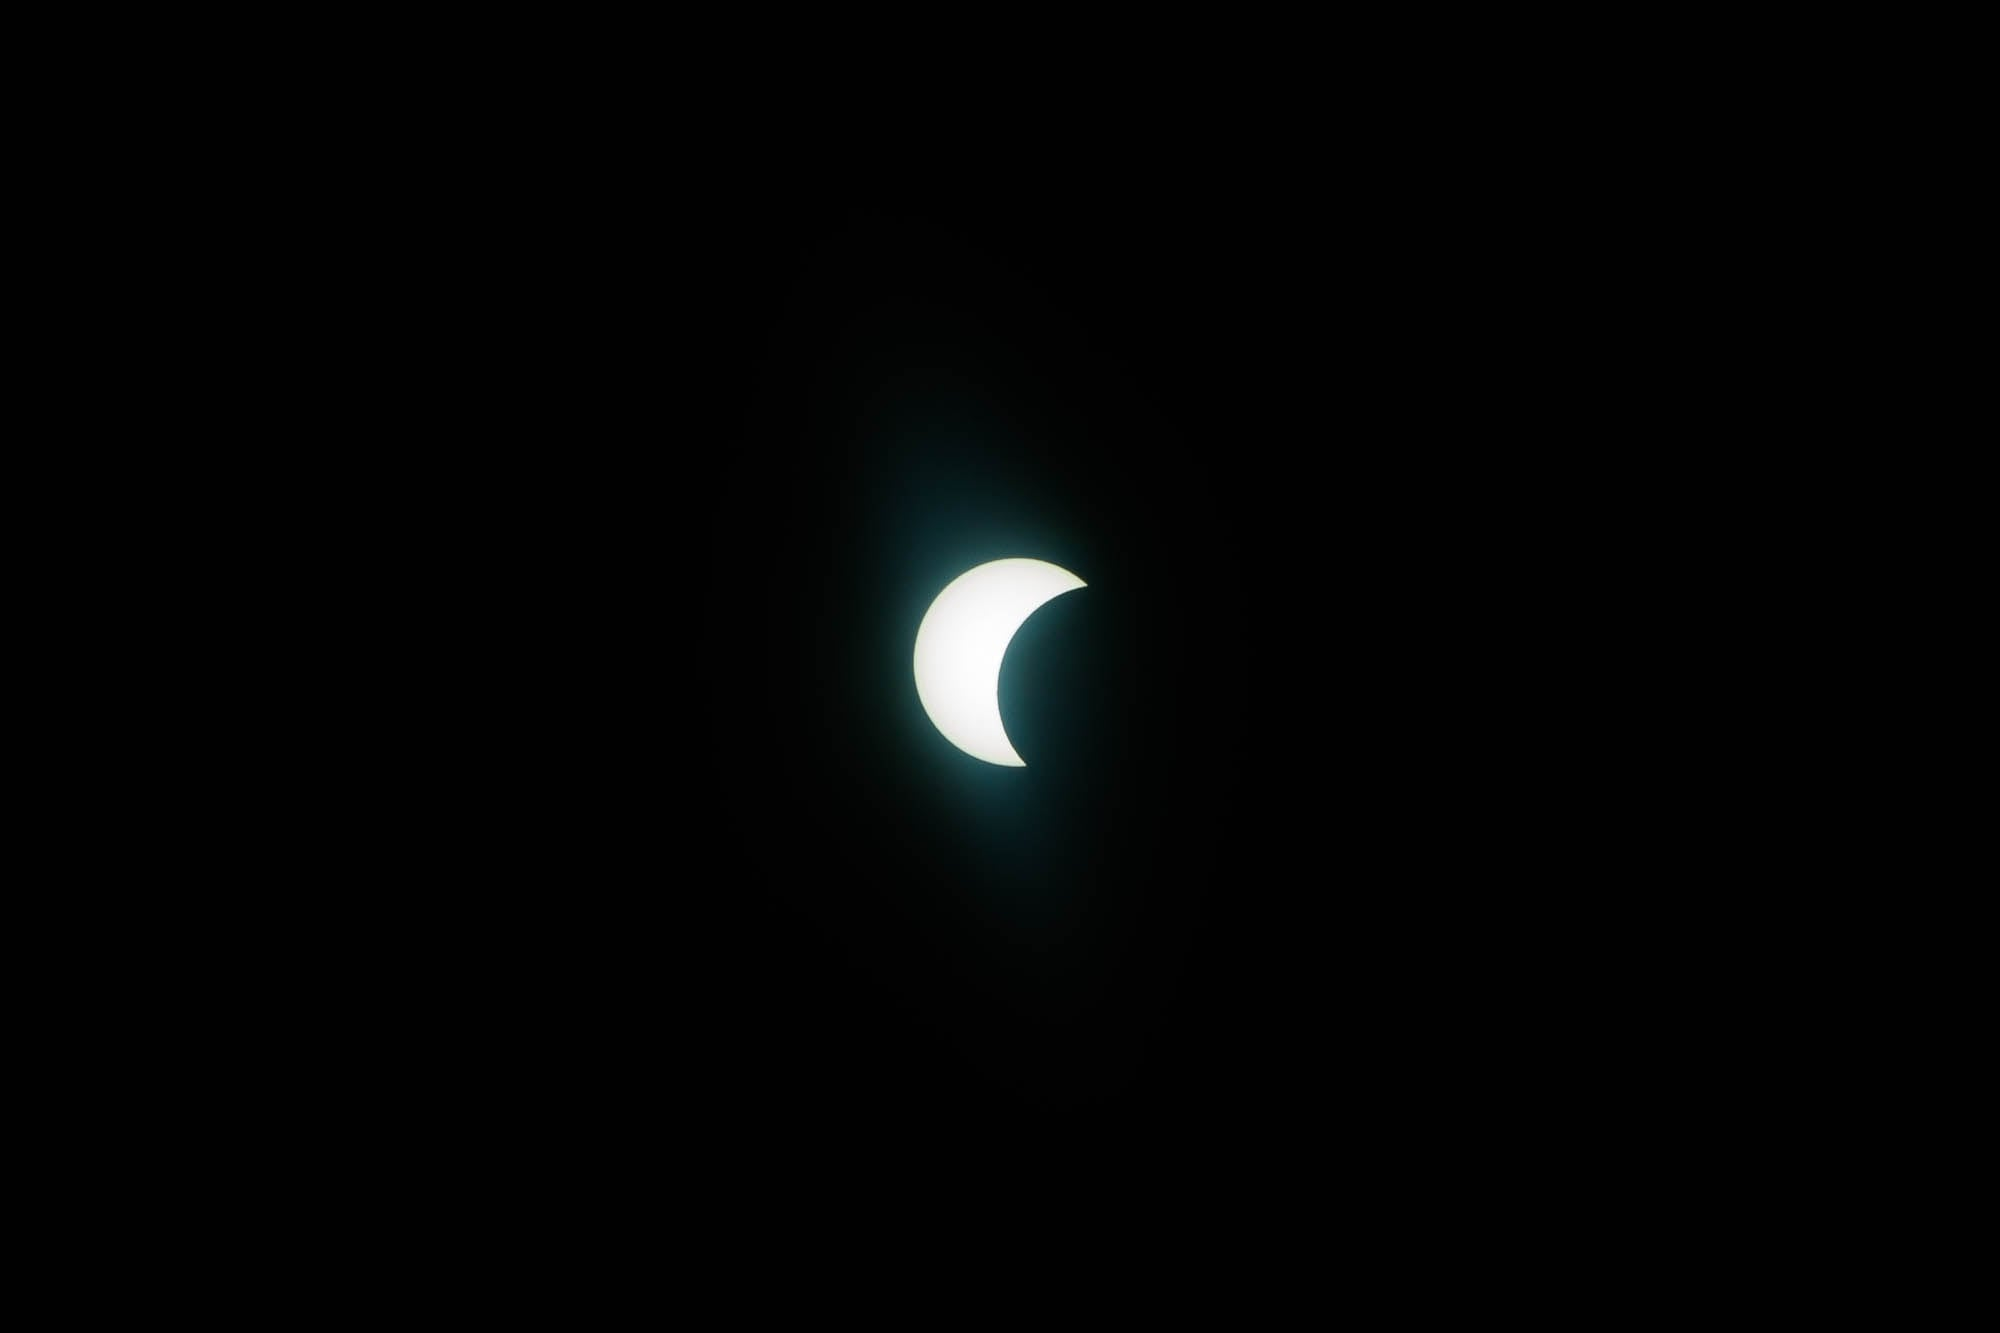 further stage of the eclipse